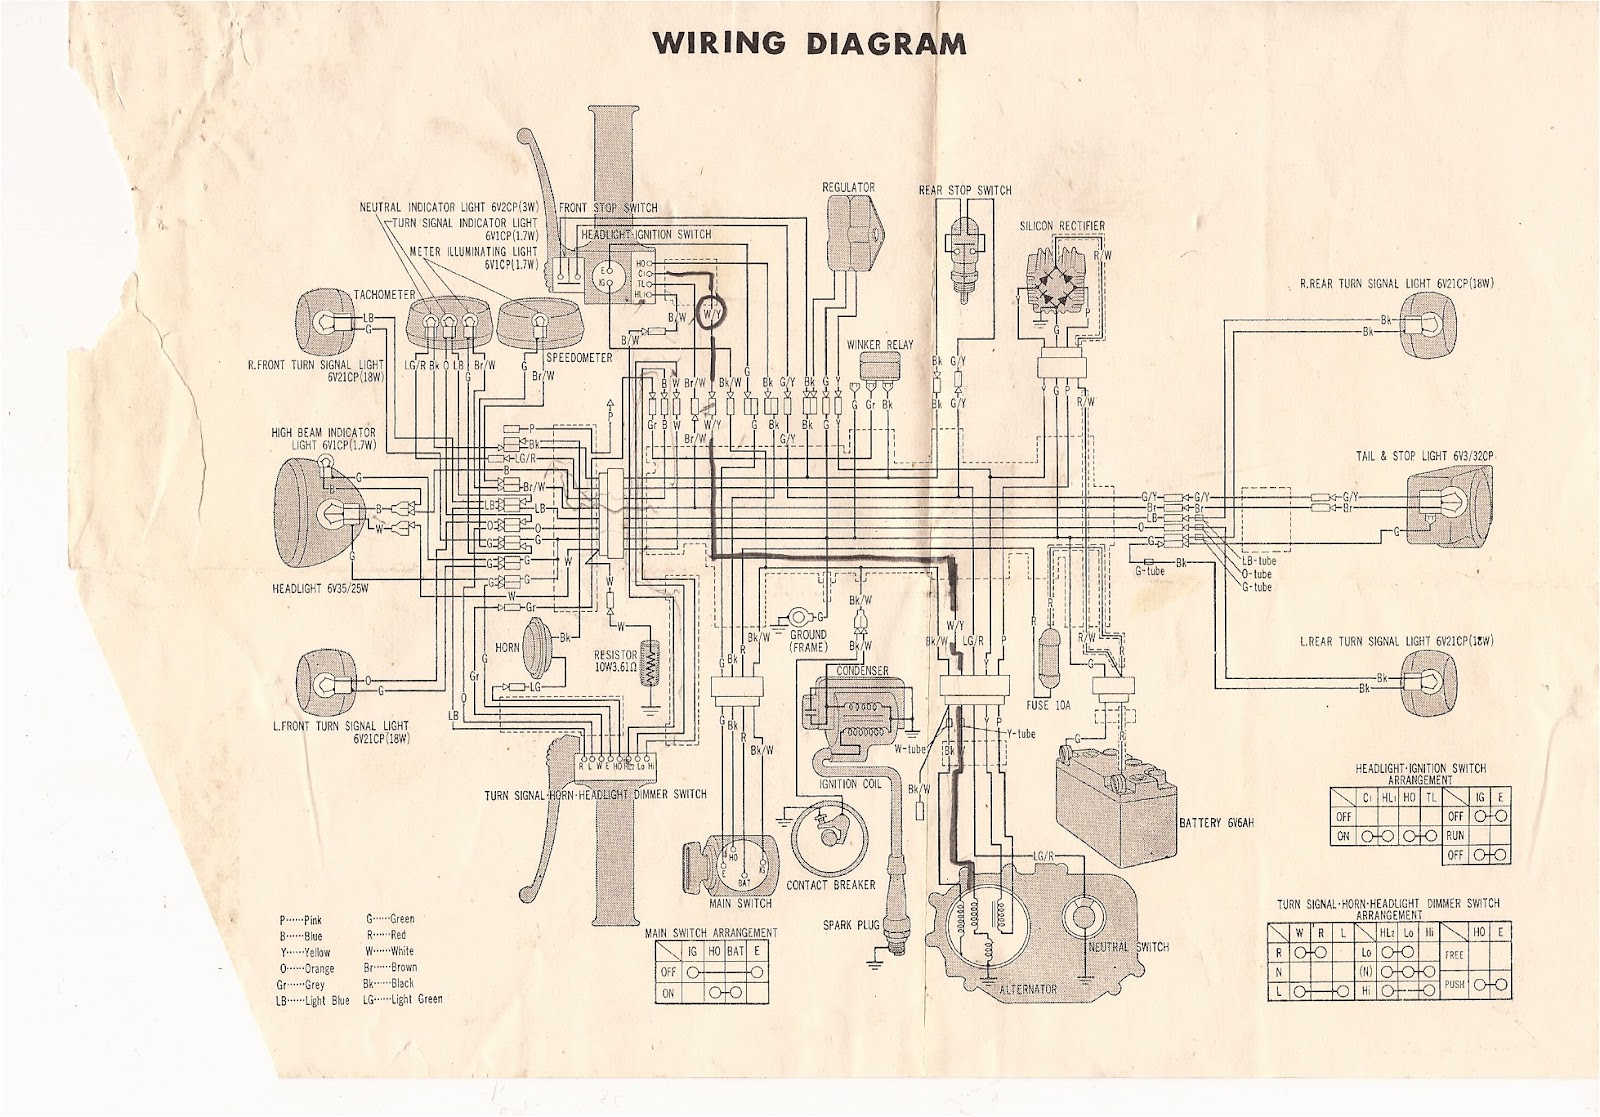 xl350 wiring diagram and xl250  [ 1600 x 1117 Pixel ]